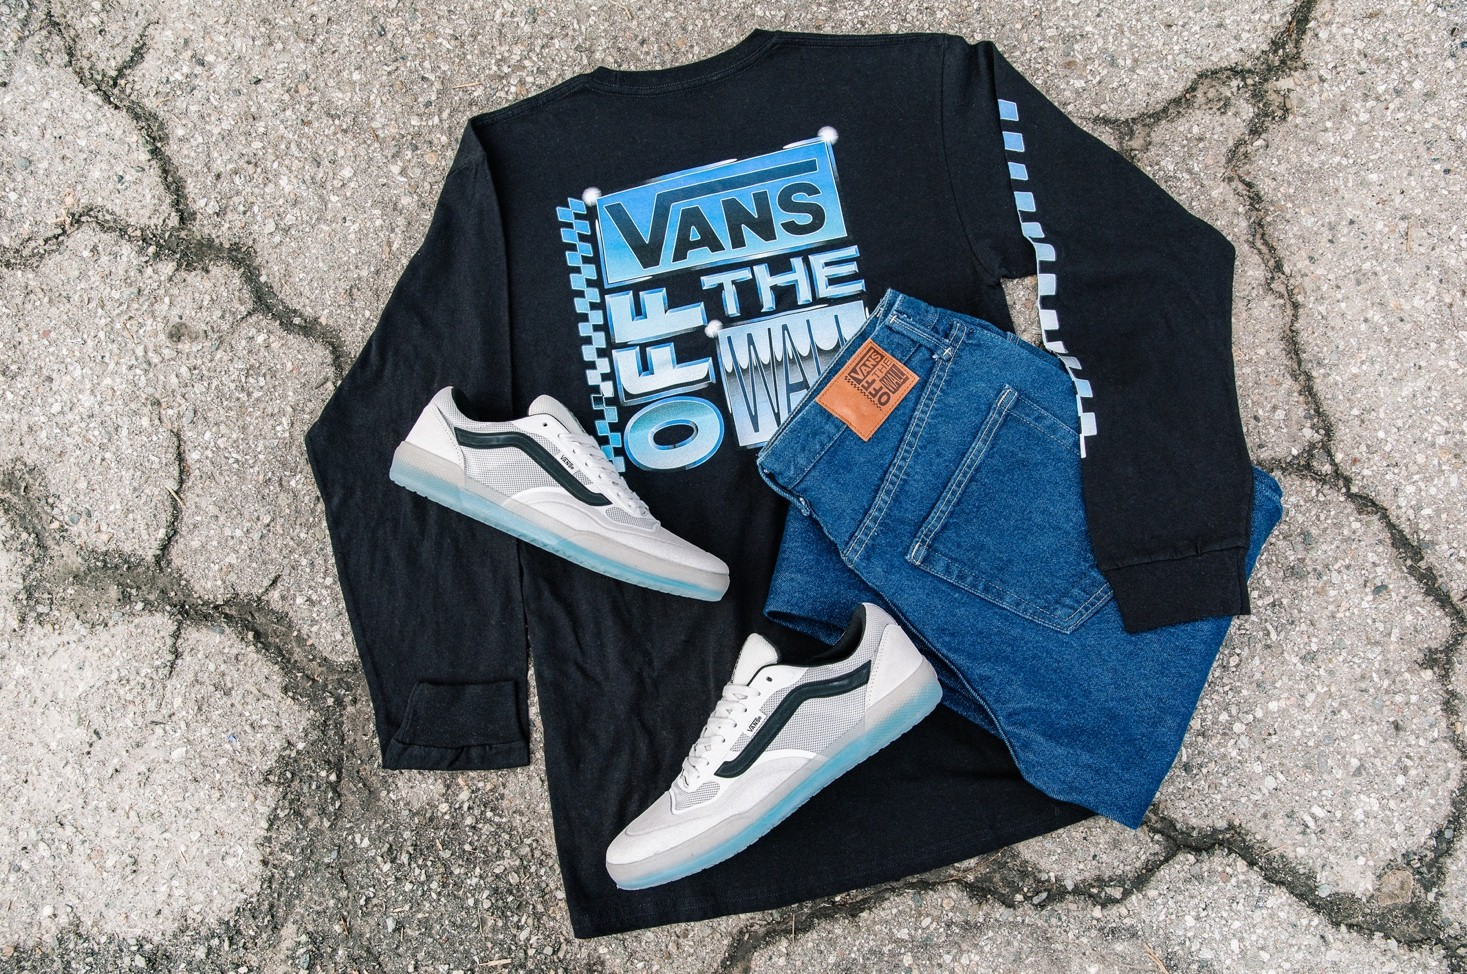 VANS INTRODUCES ANTHONY VAN ENGELEN'S NEW SHOE & APPAREL COLLECTION